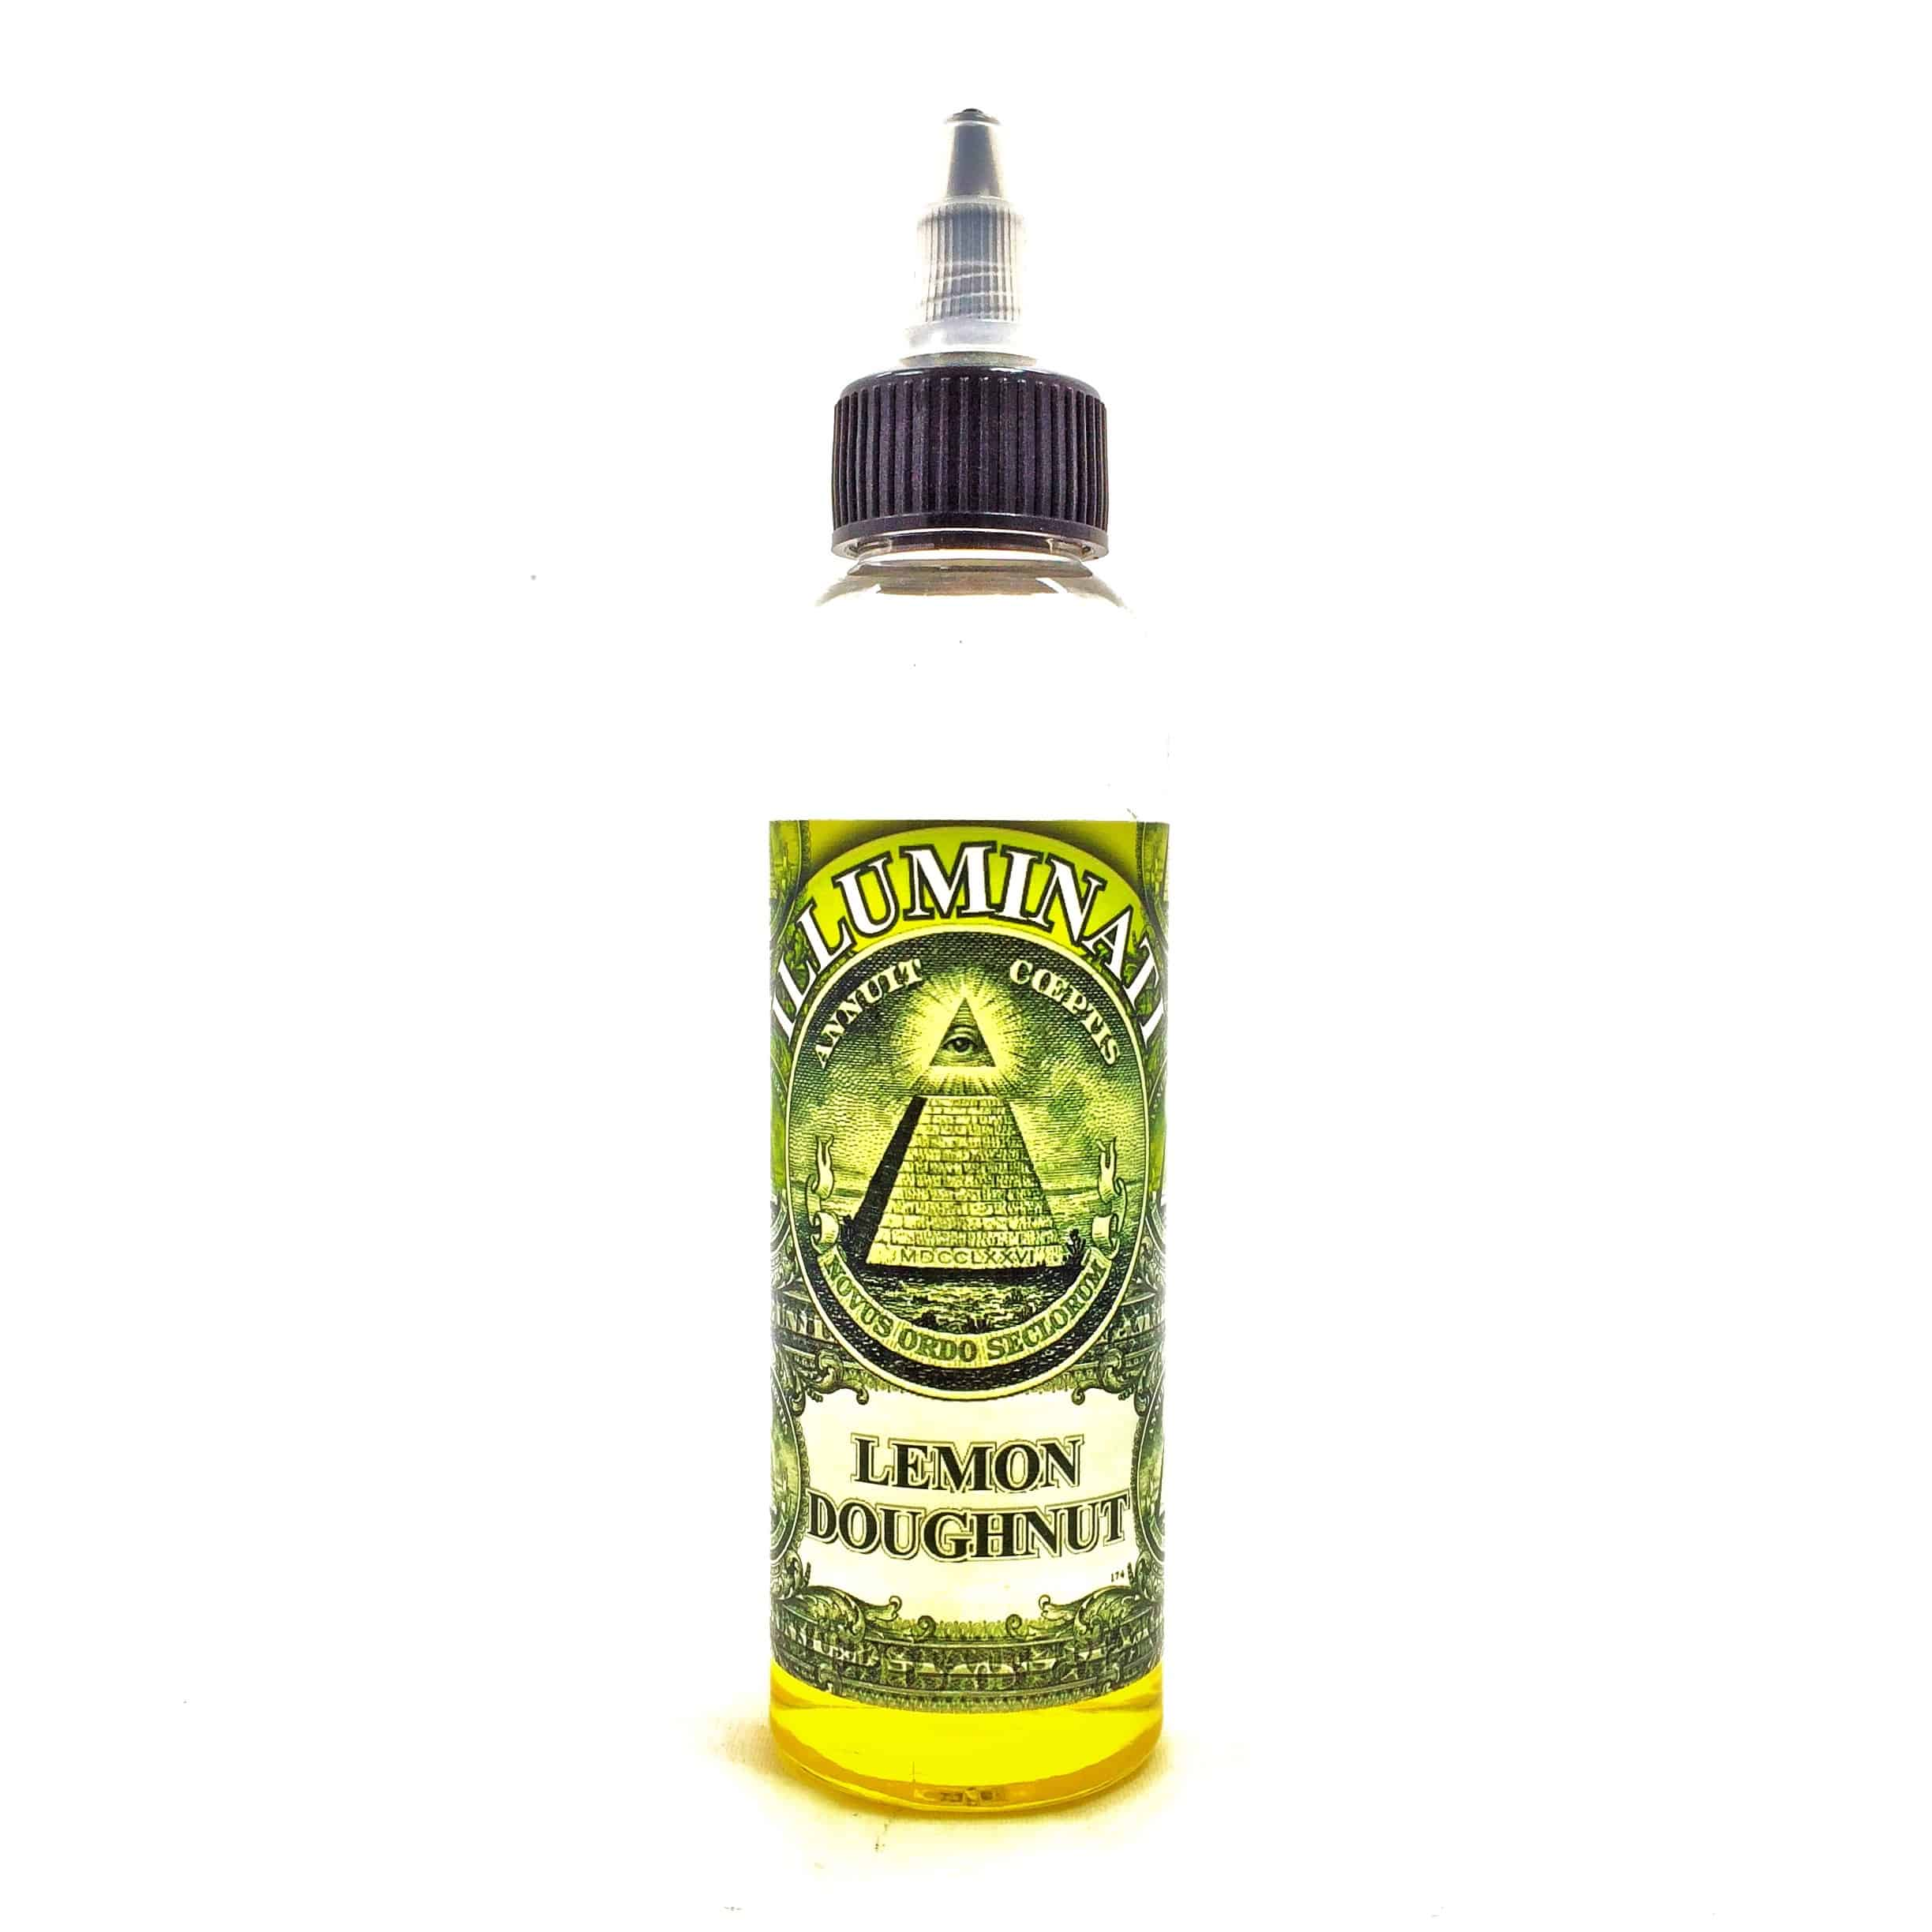 LEMON DOUGHNUT – ILLUMINATI 80/20